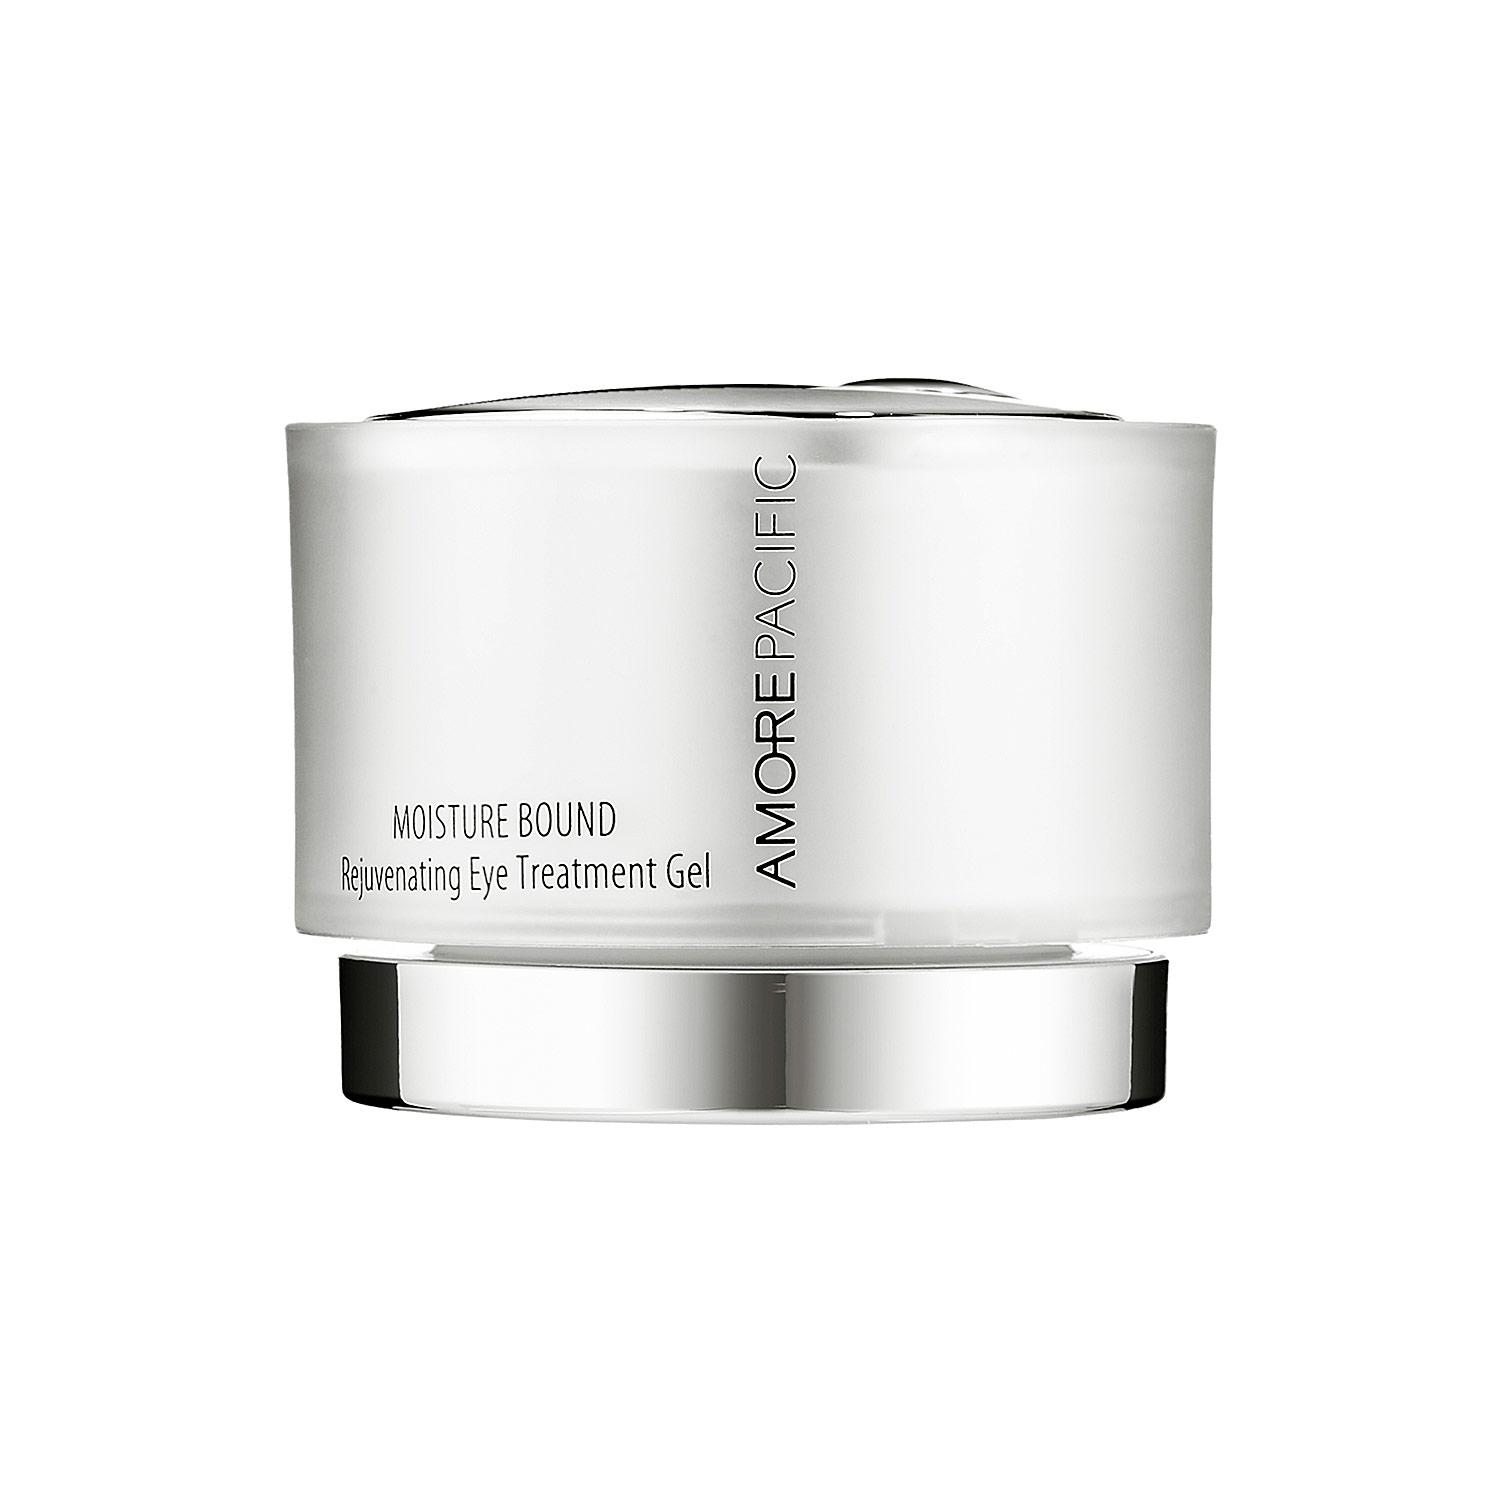 Rejuvenating Eye Treatment Gel